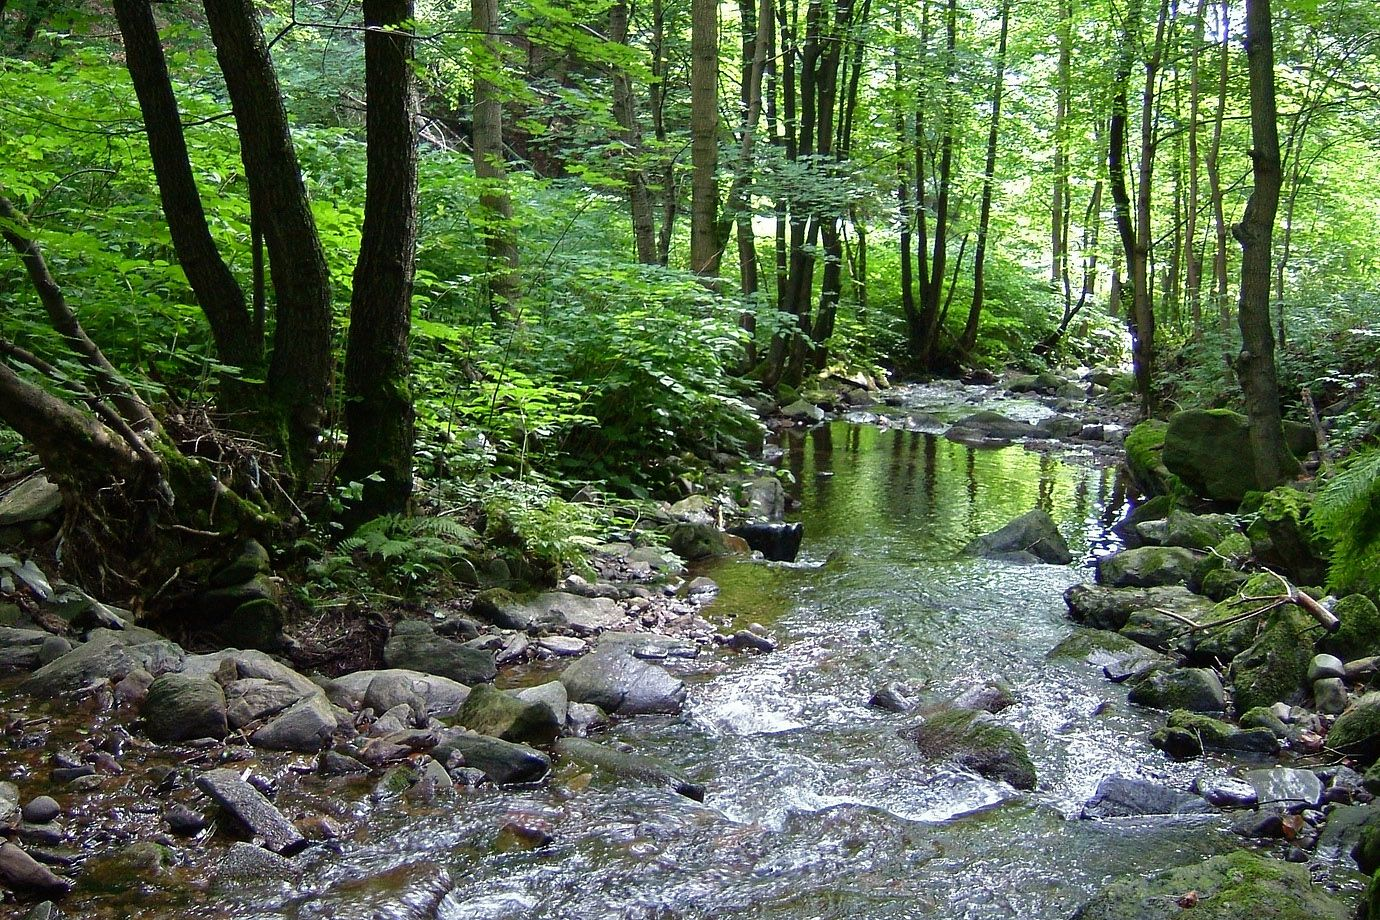 Creek in a forest in Thüringen